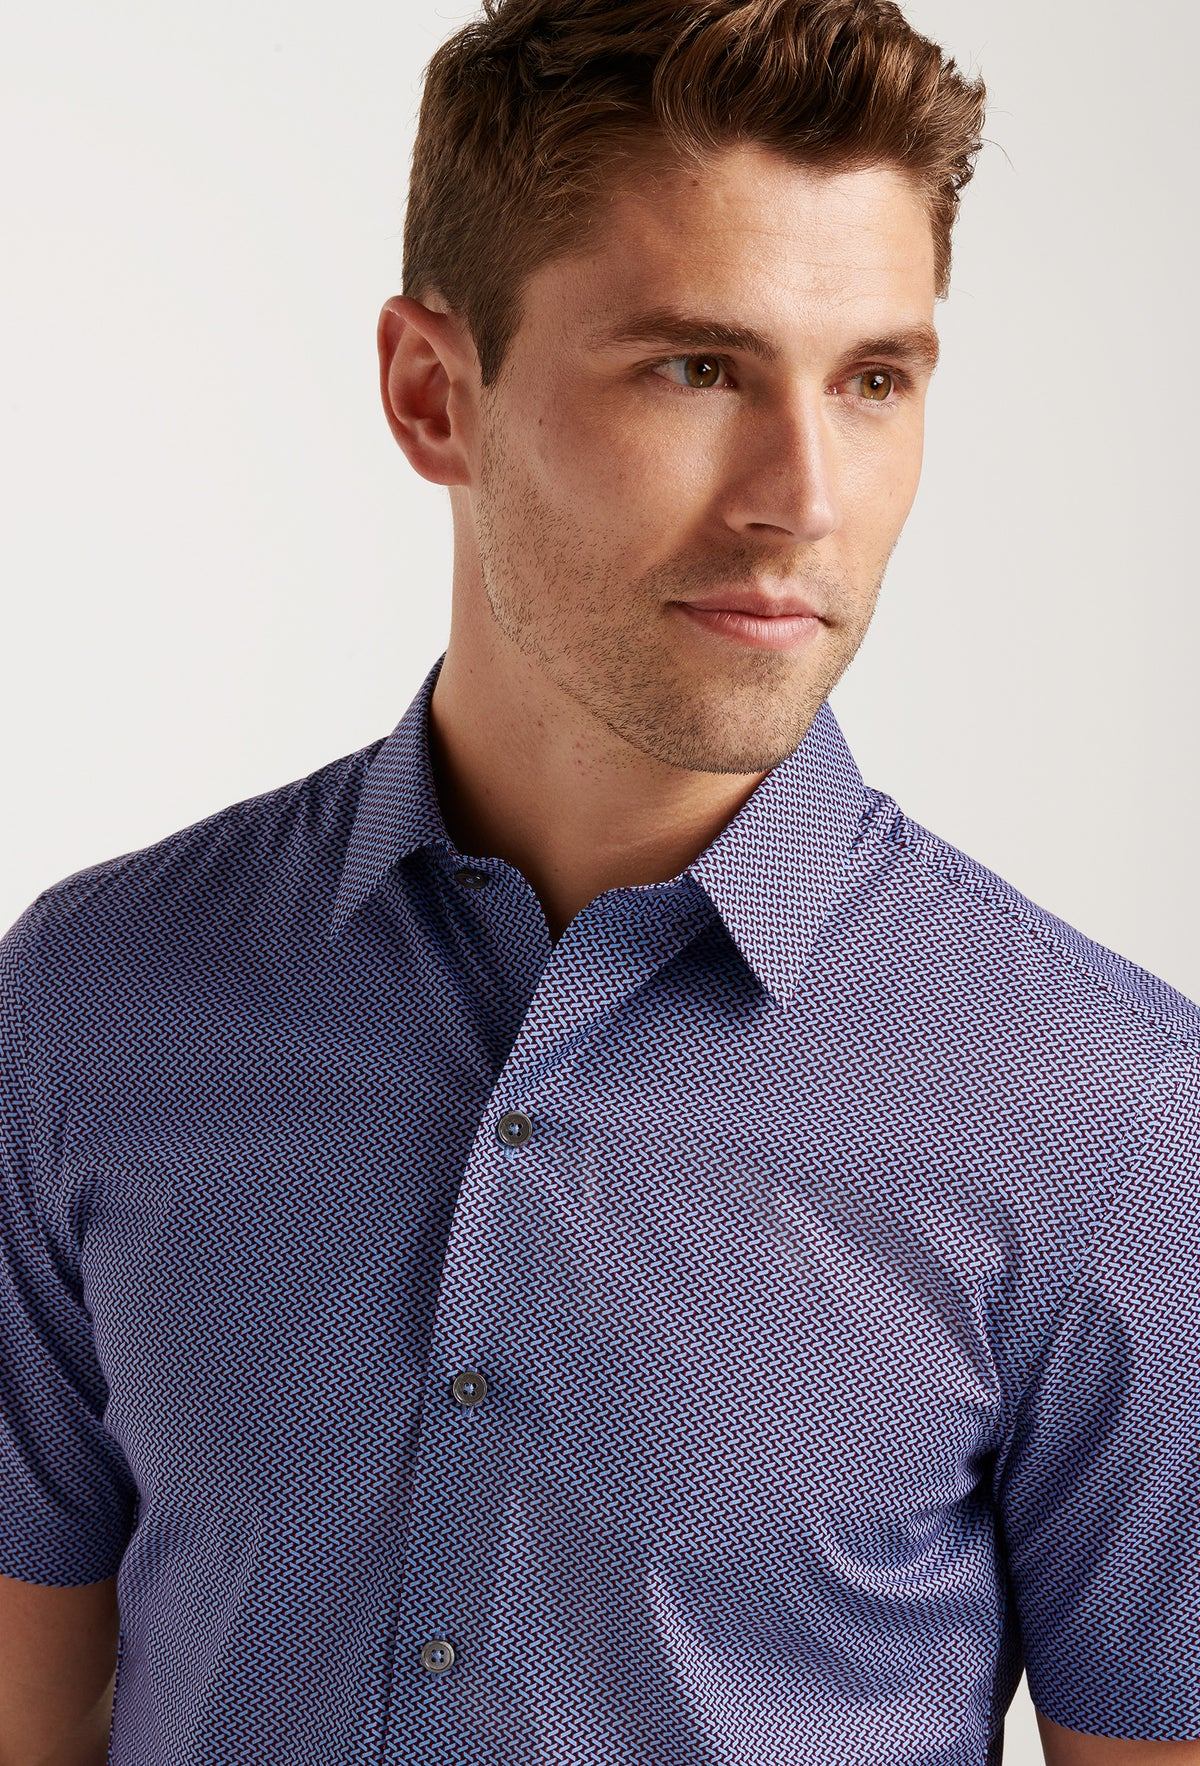 ZACHARY-PRELL-Jackson-ShirtsModern-Menswear-New-Dress-Code